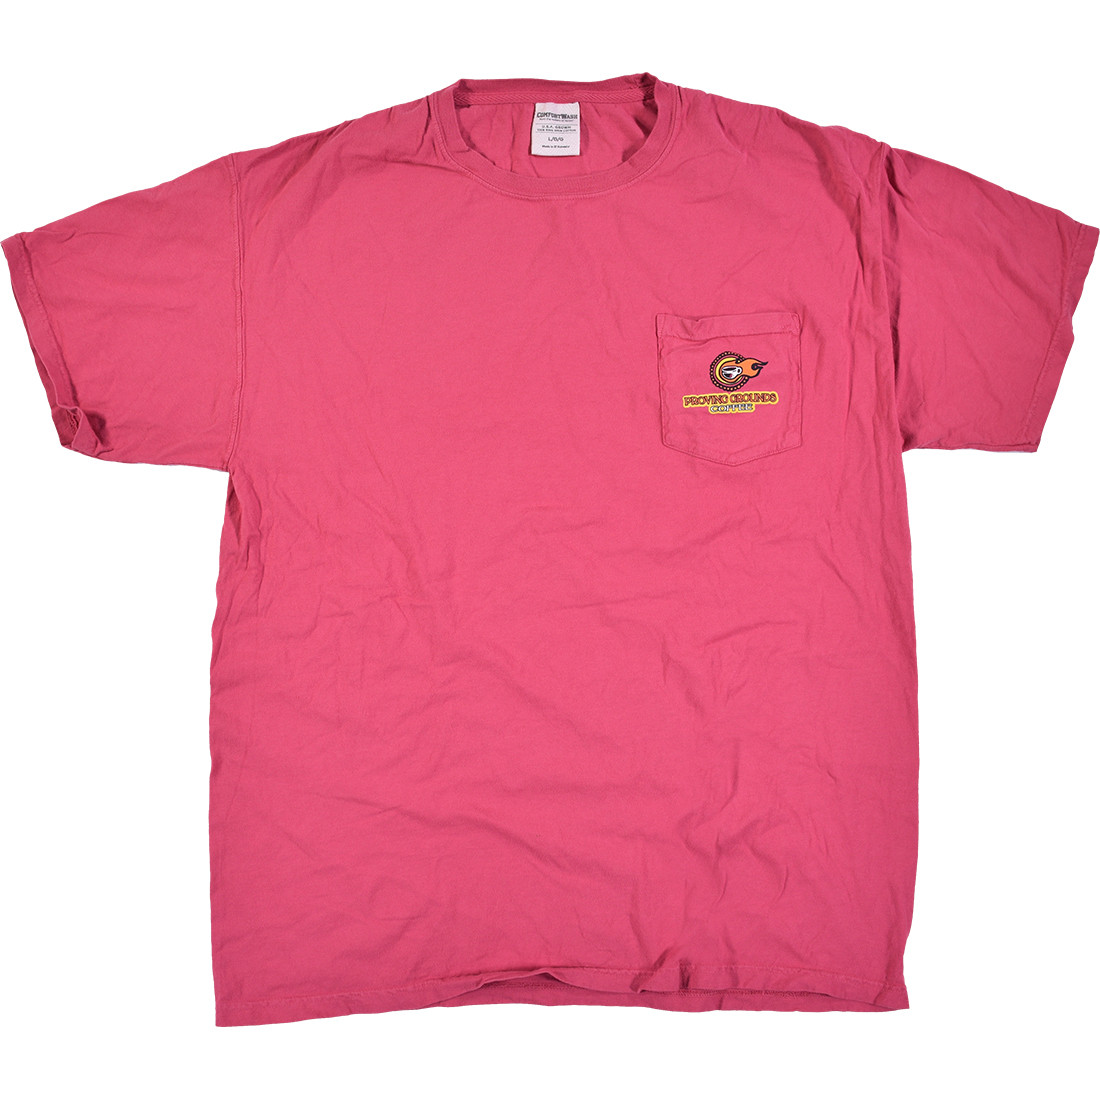 Proving Grounds Red T-Shirt